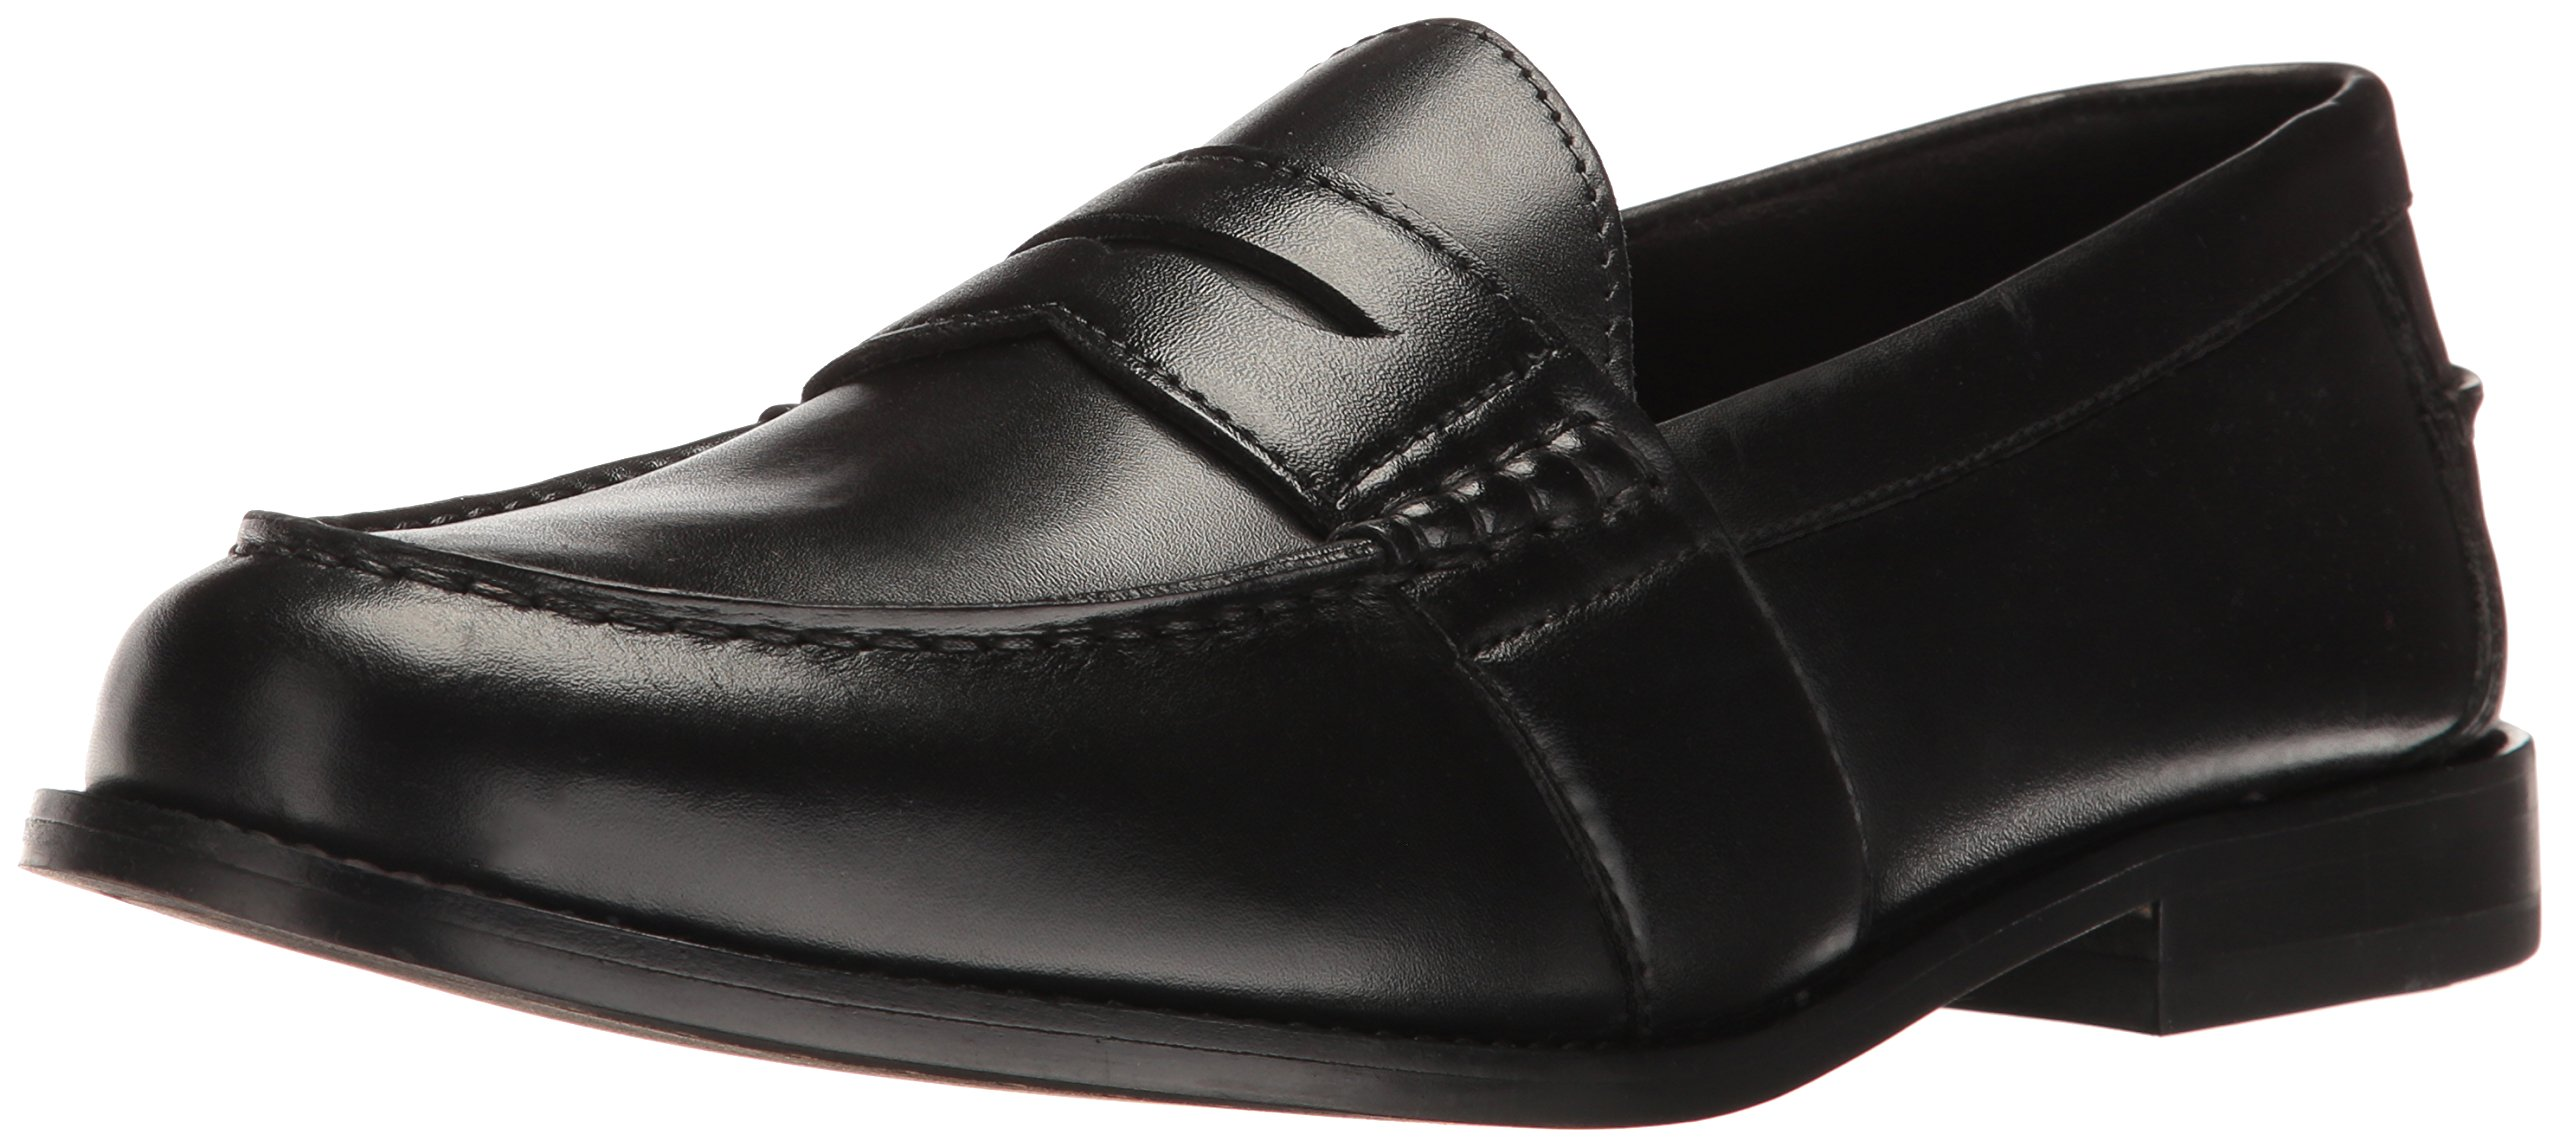 Nunn Bush Men's Noah Penny Loafer, Black, 9.5 M US